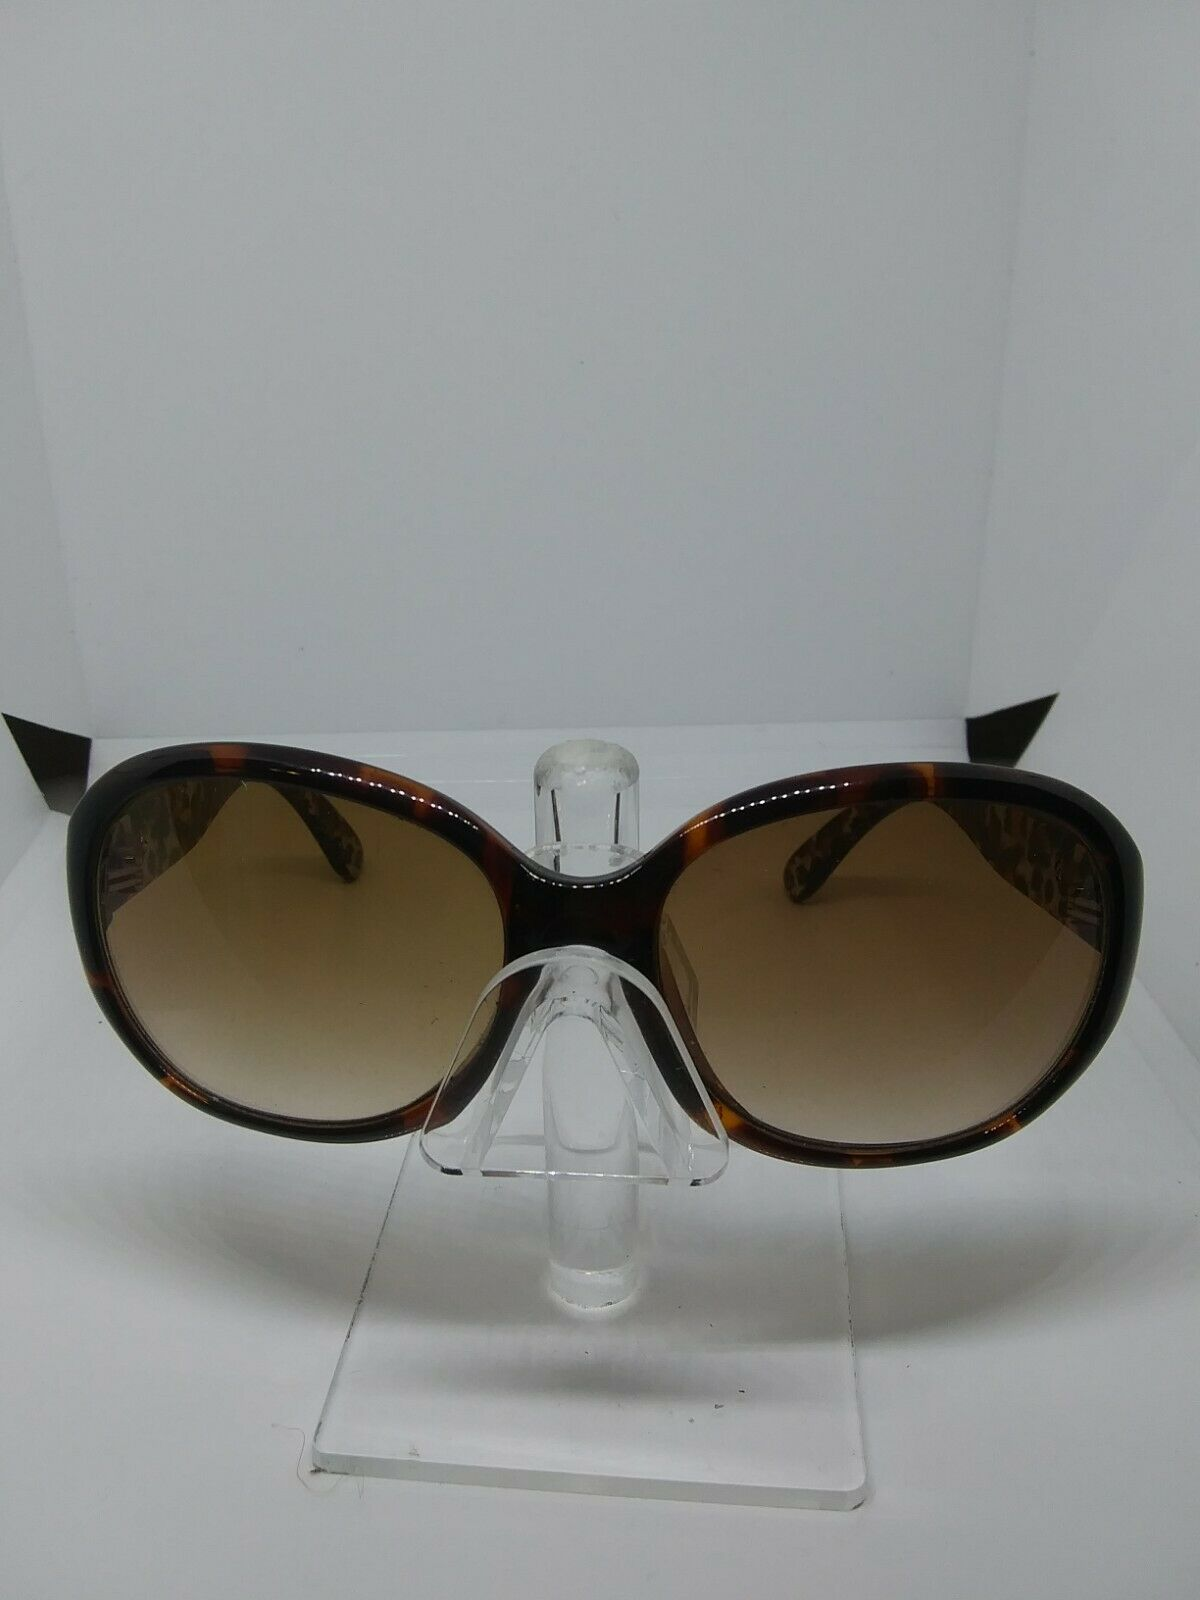 Authentic Guess Sunglasses Circle Tortoise Frame with Animal Print on Inner Arm